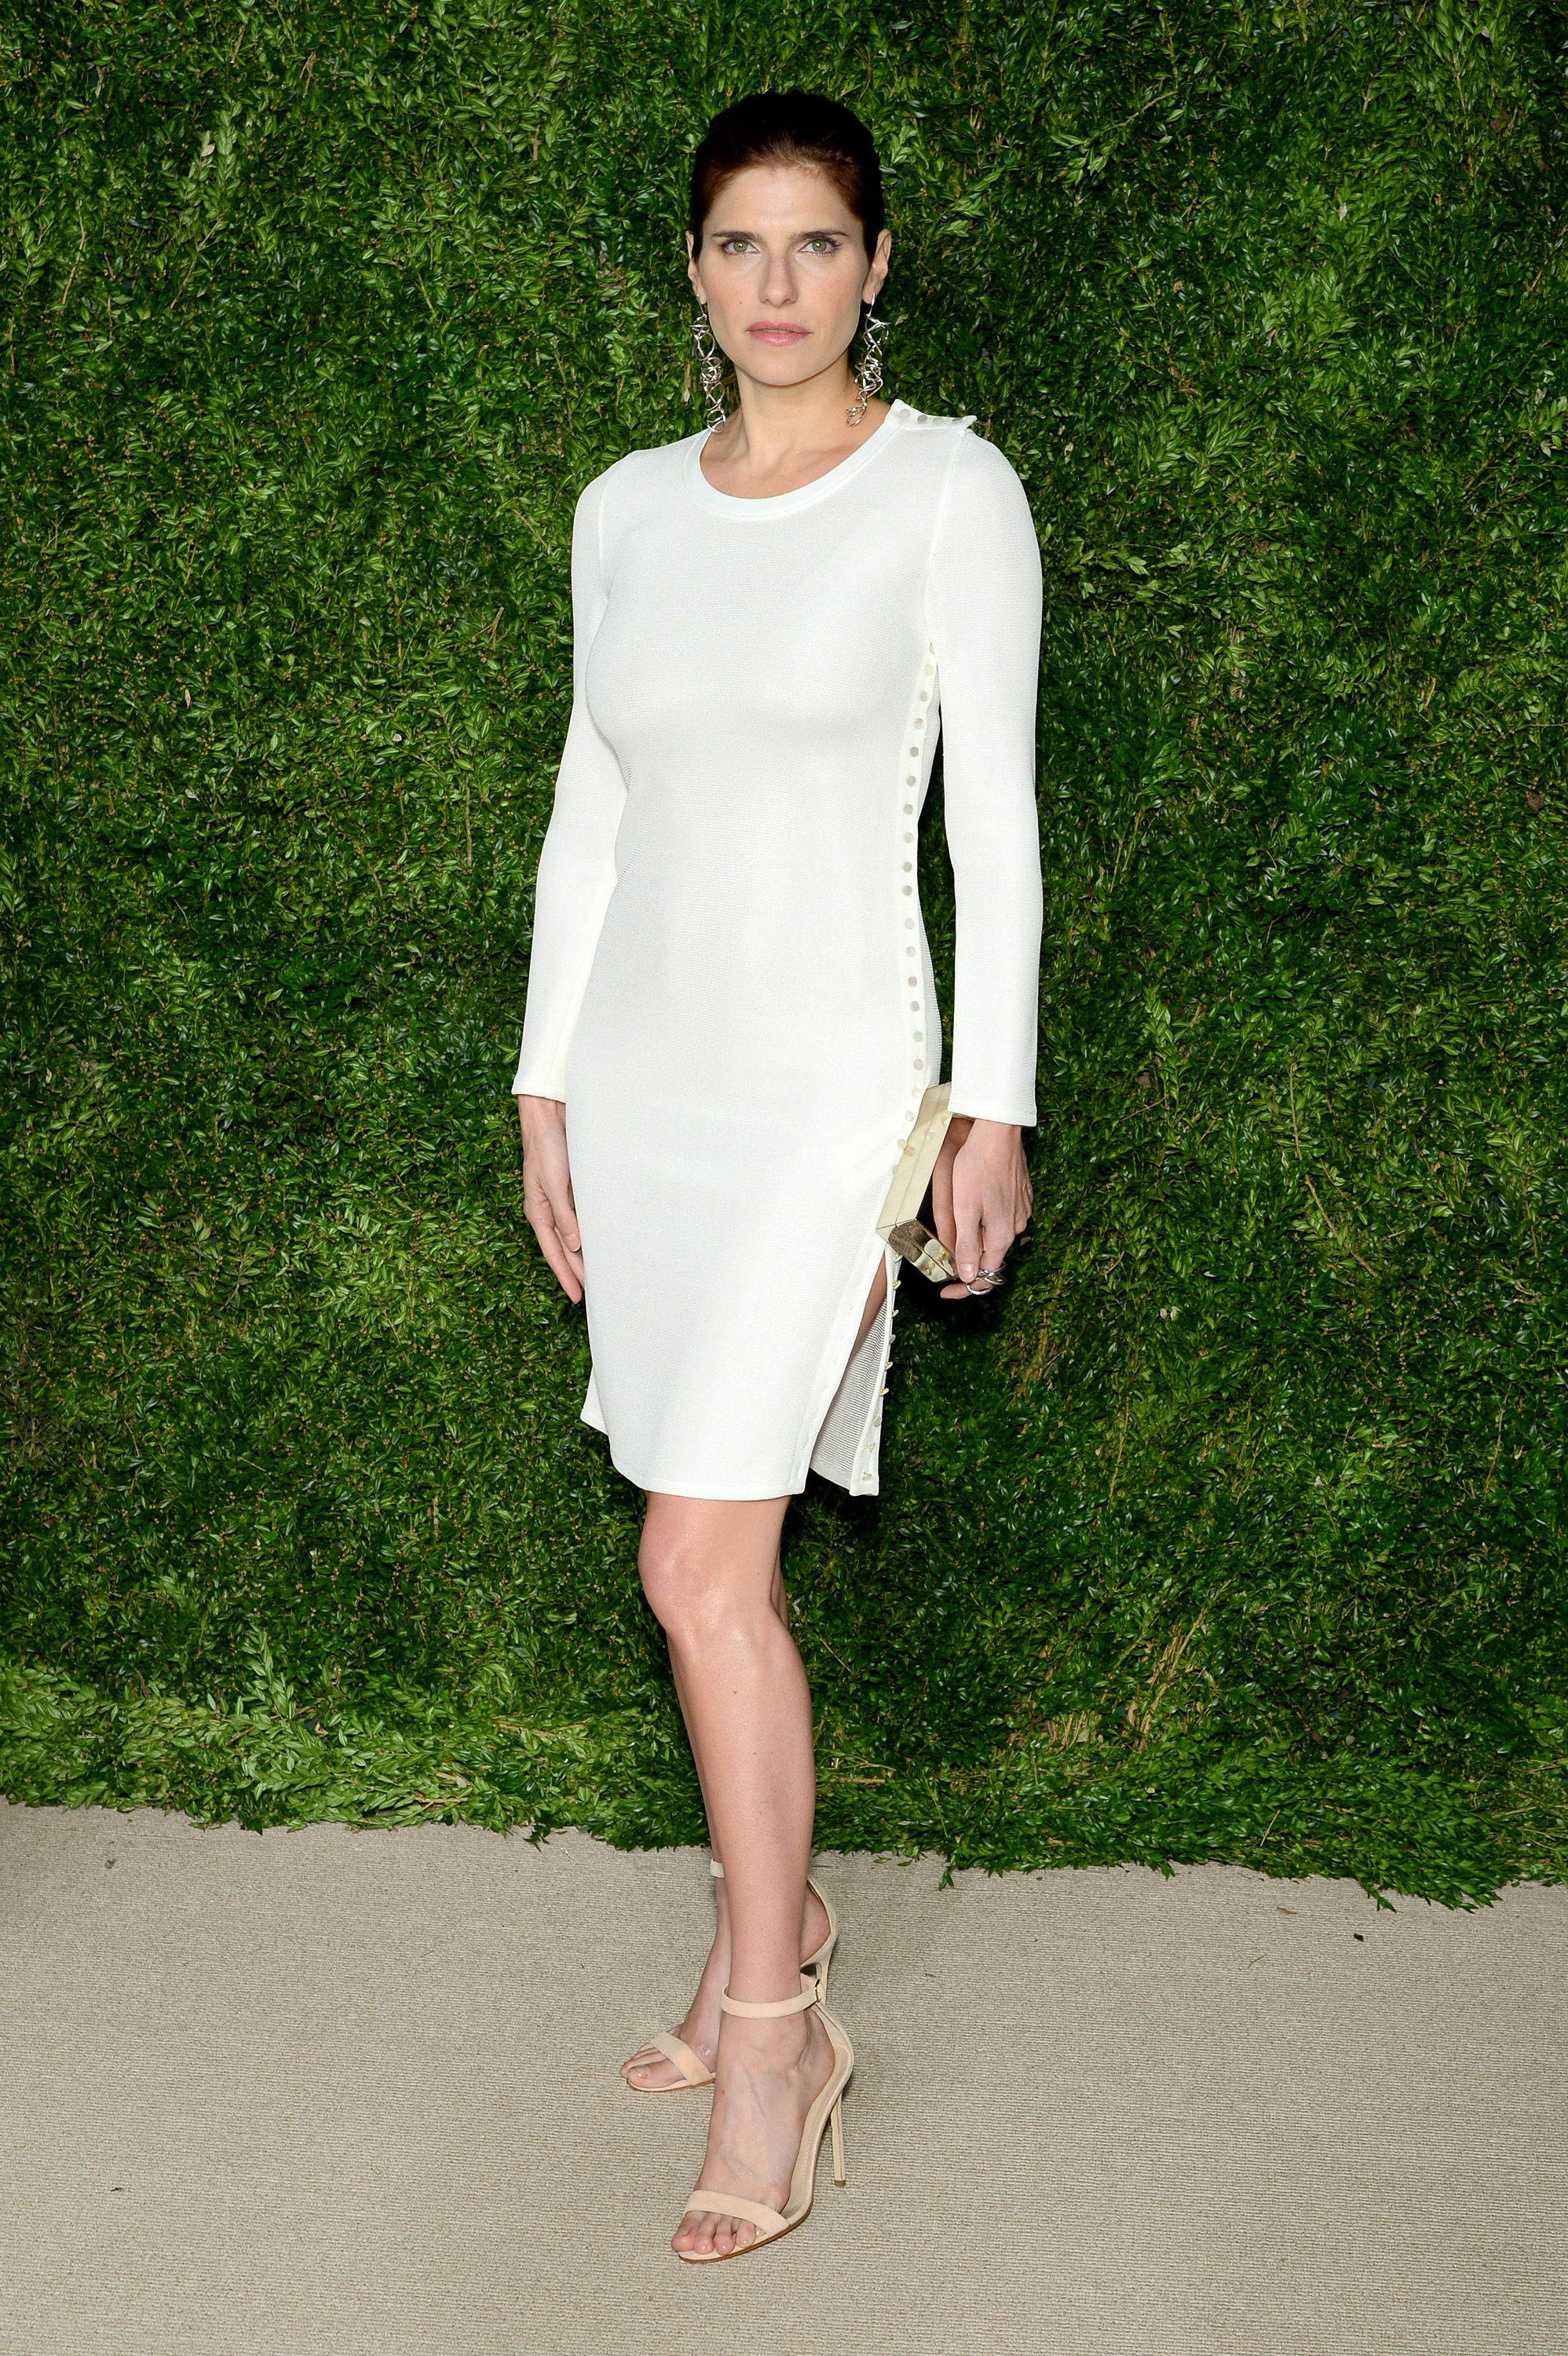 attends the 12th annual CFDA/Vogue Fashion Fund Awards at Spring Studios on November 2, 2015 in New York City.